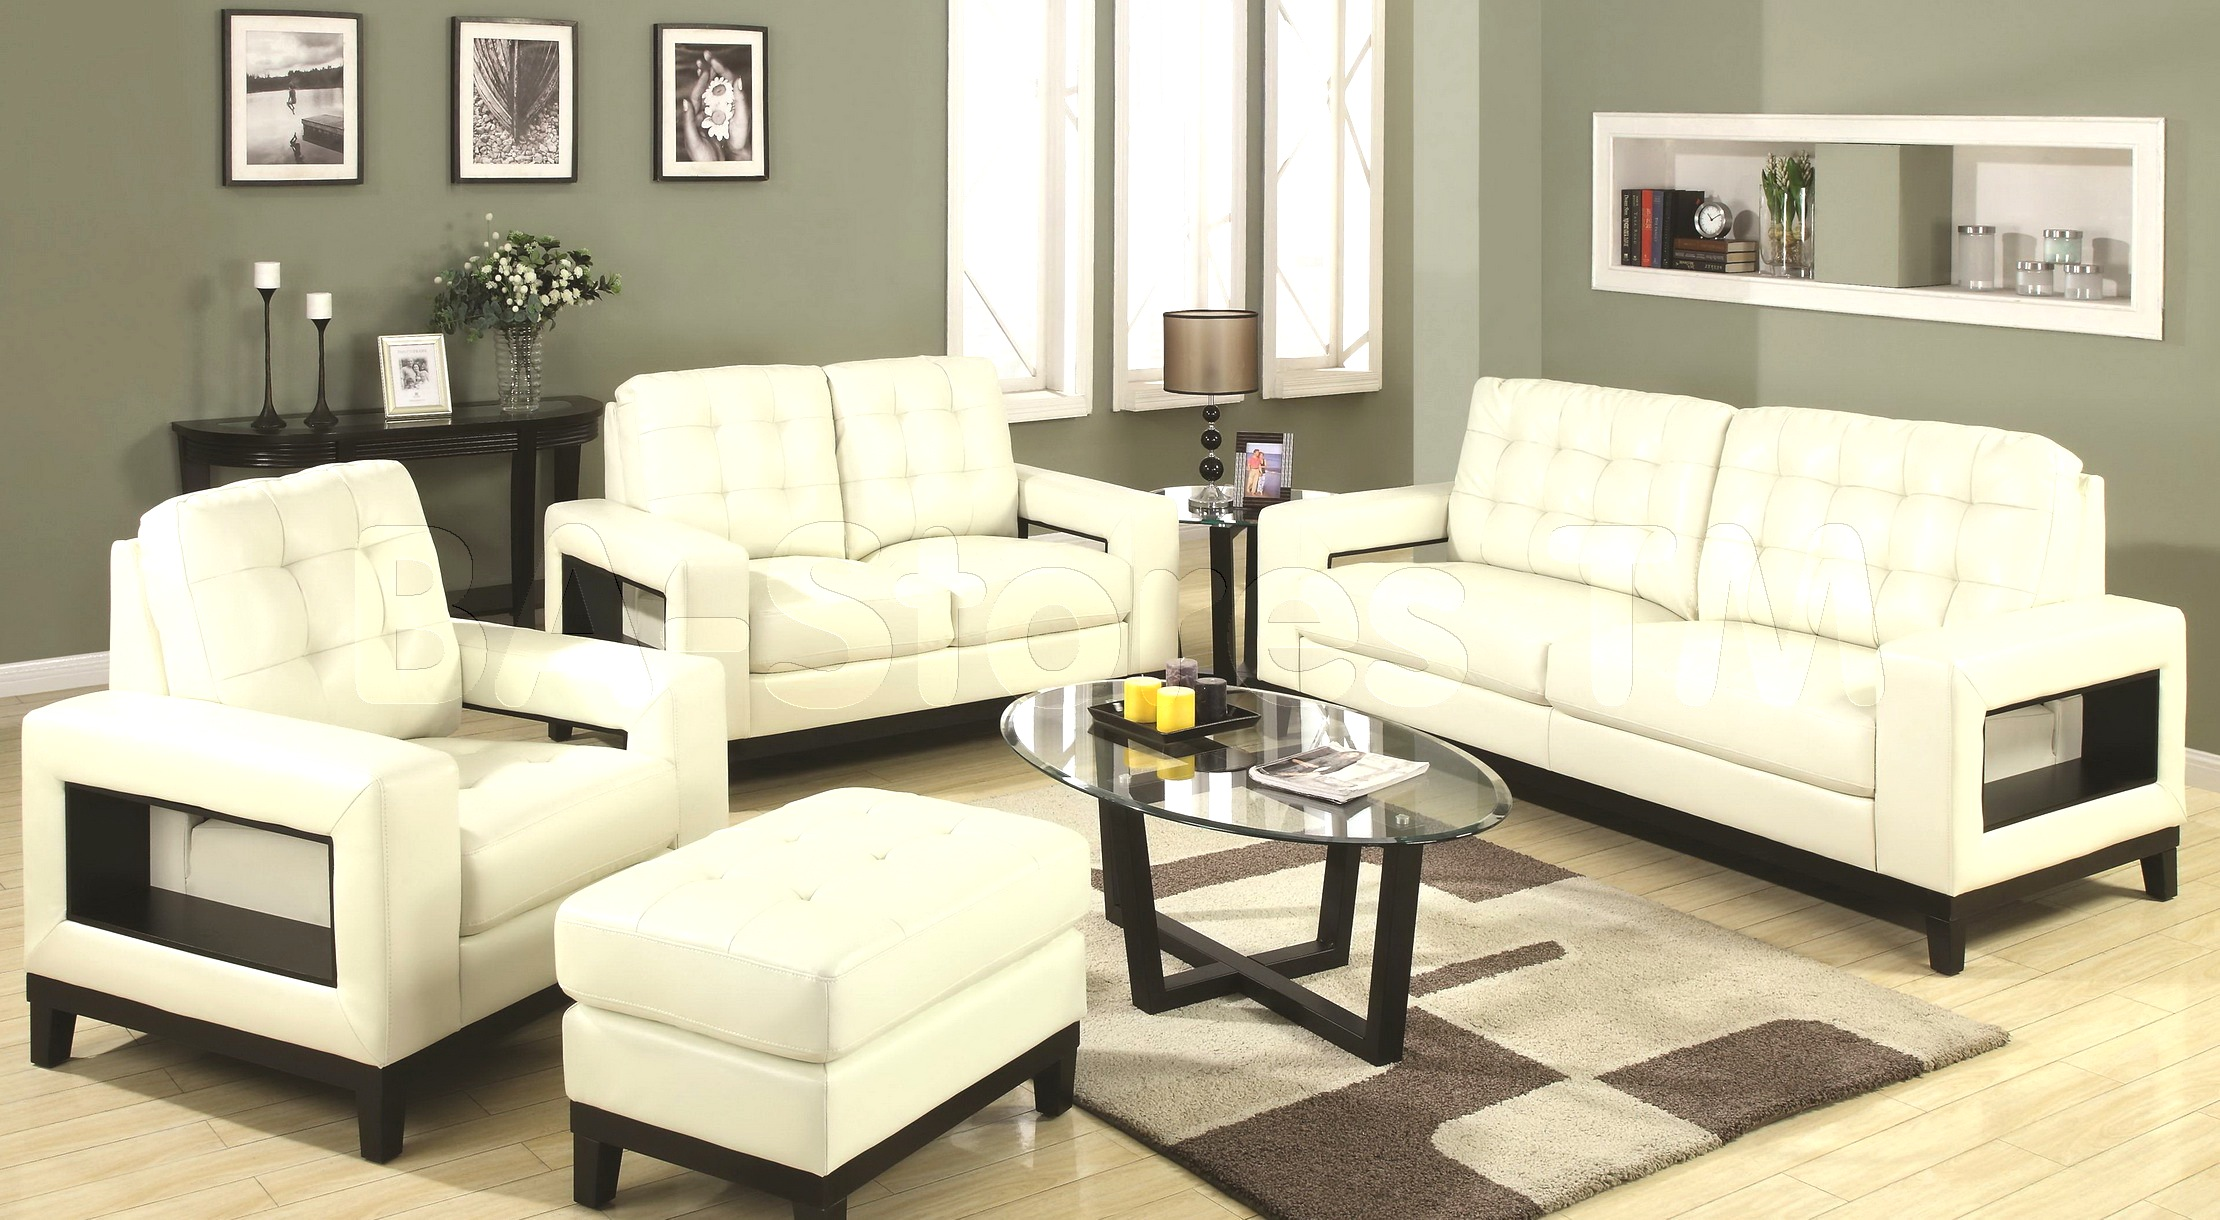 Sofa set in living room for Sectional living room sets